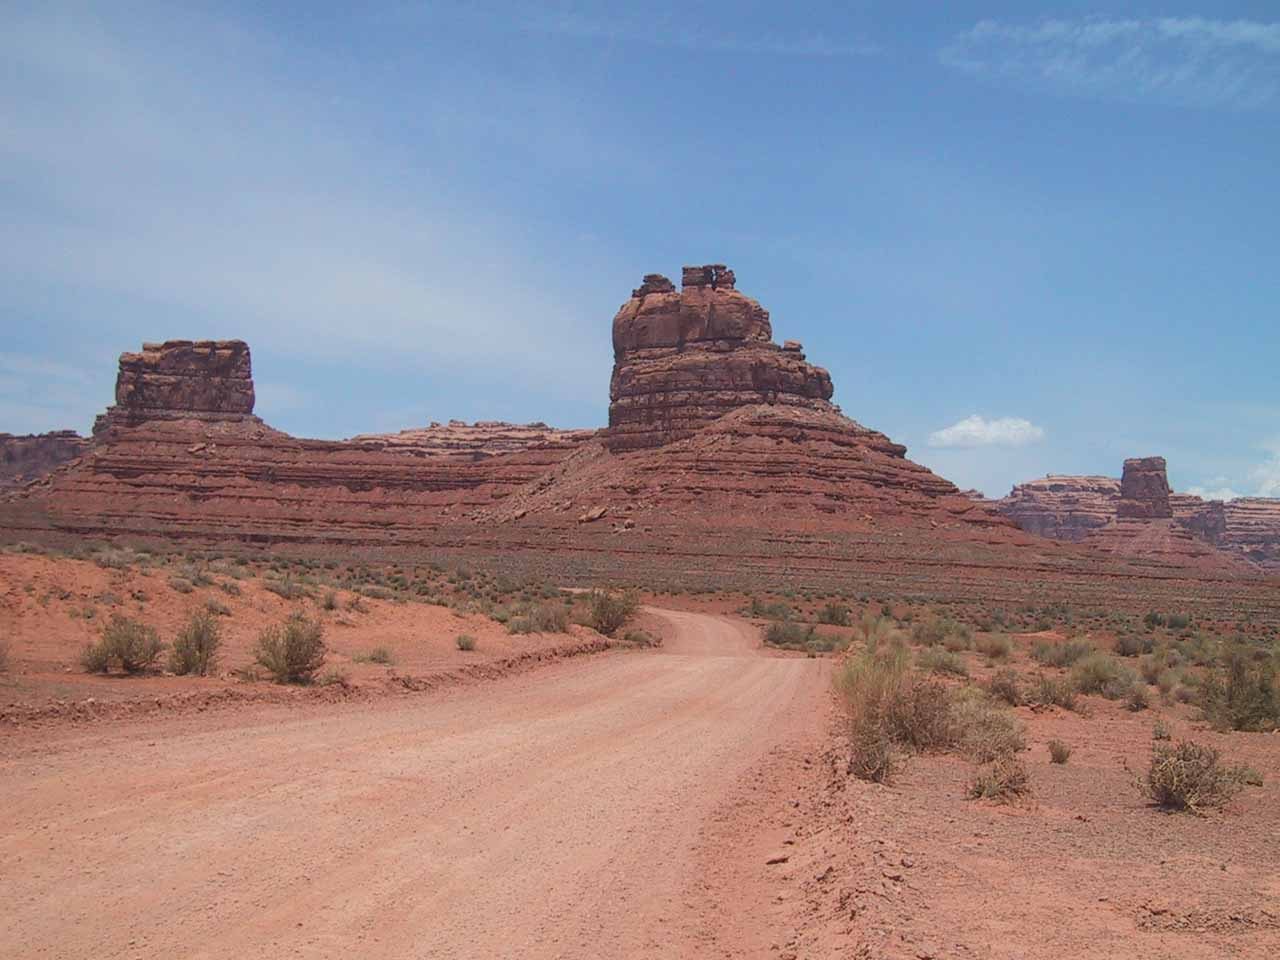 The unpaved road passing through more buttes and mesas in Valley of the Gods